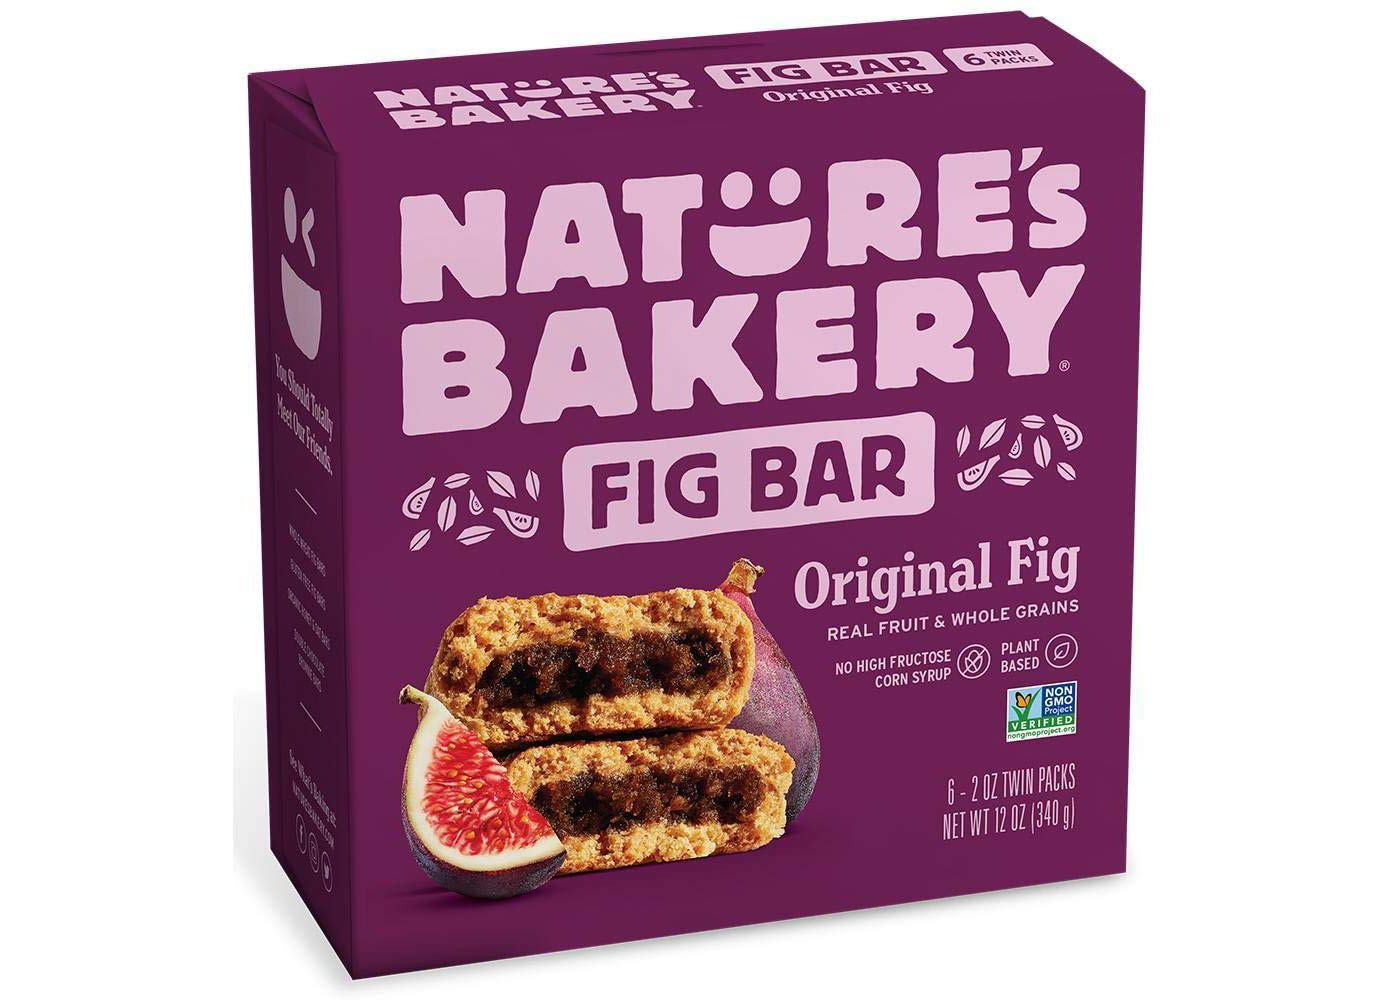 Nature's Bakery Original Real Fruit, Whole Grain Fig Bar - 6 ct. (12 oz.) by Nature's Bakery FB